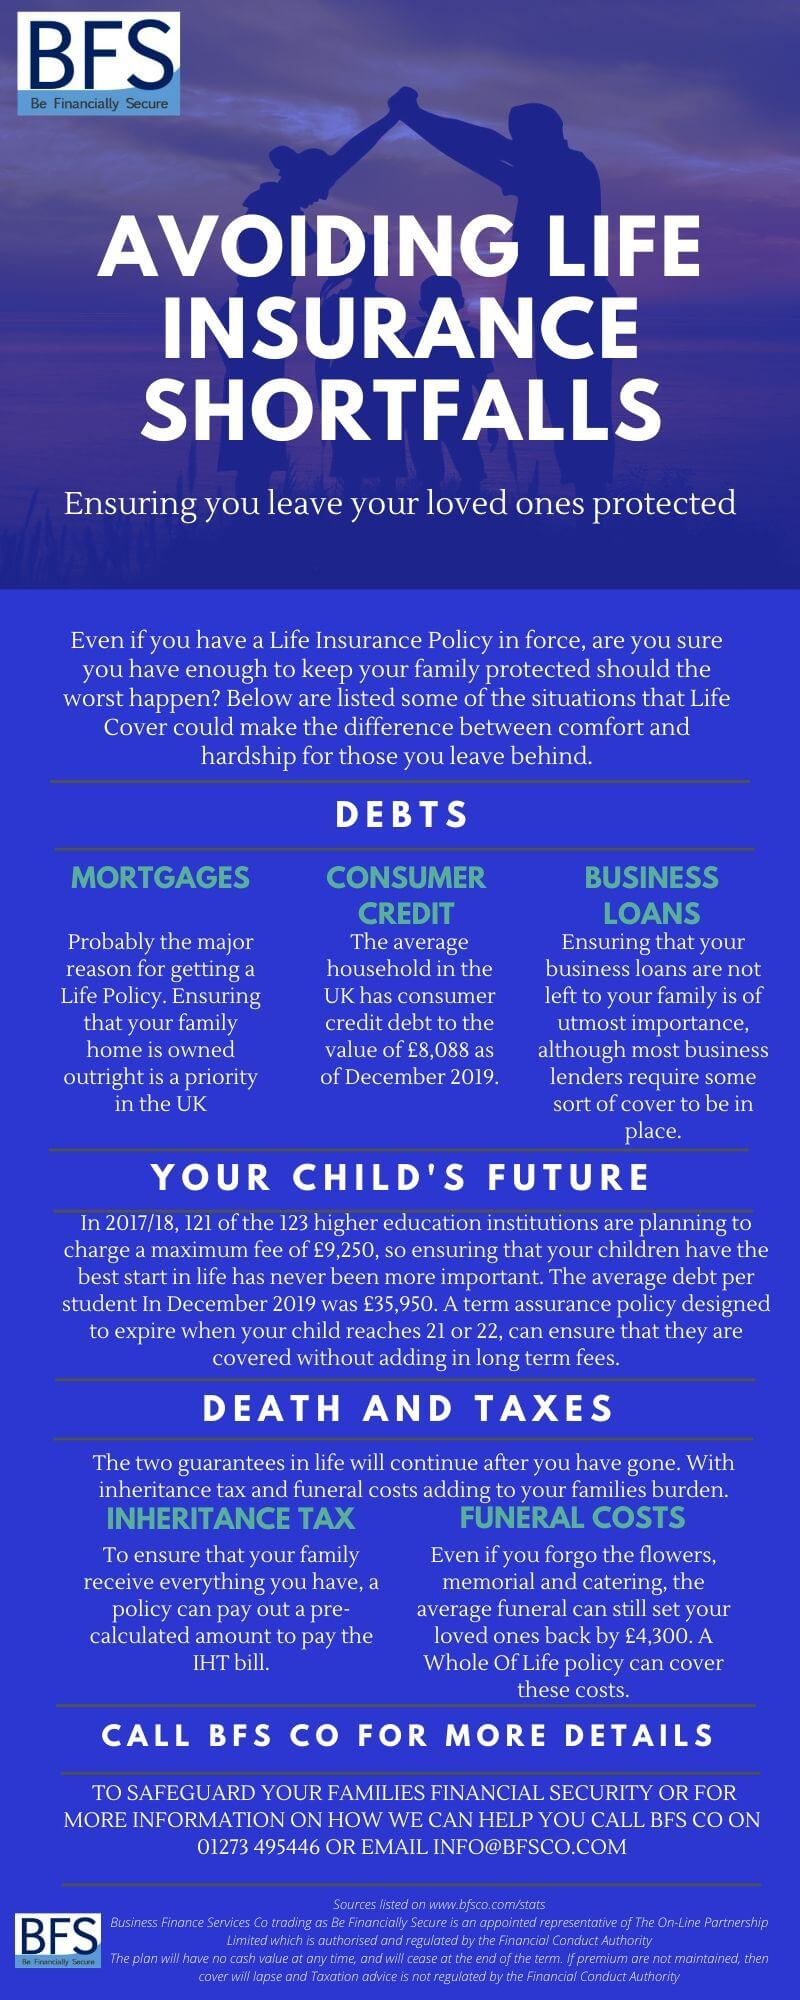 Life Insurance Shortfalls. Even if you have a Life Insurance Policy in force, are you sure you have enough to keep your family protected should the worst happen?